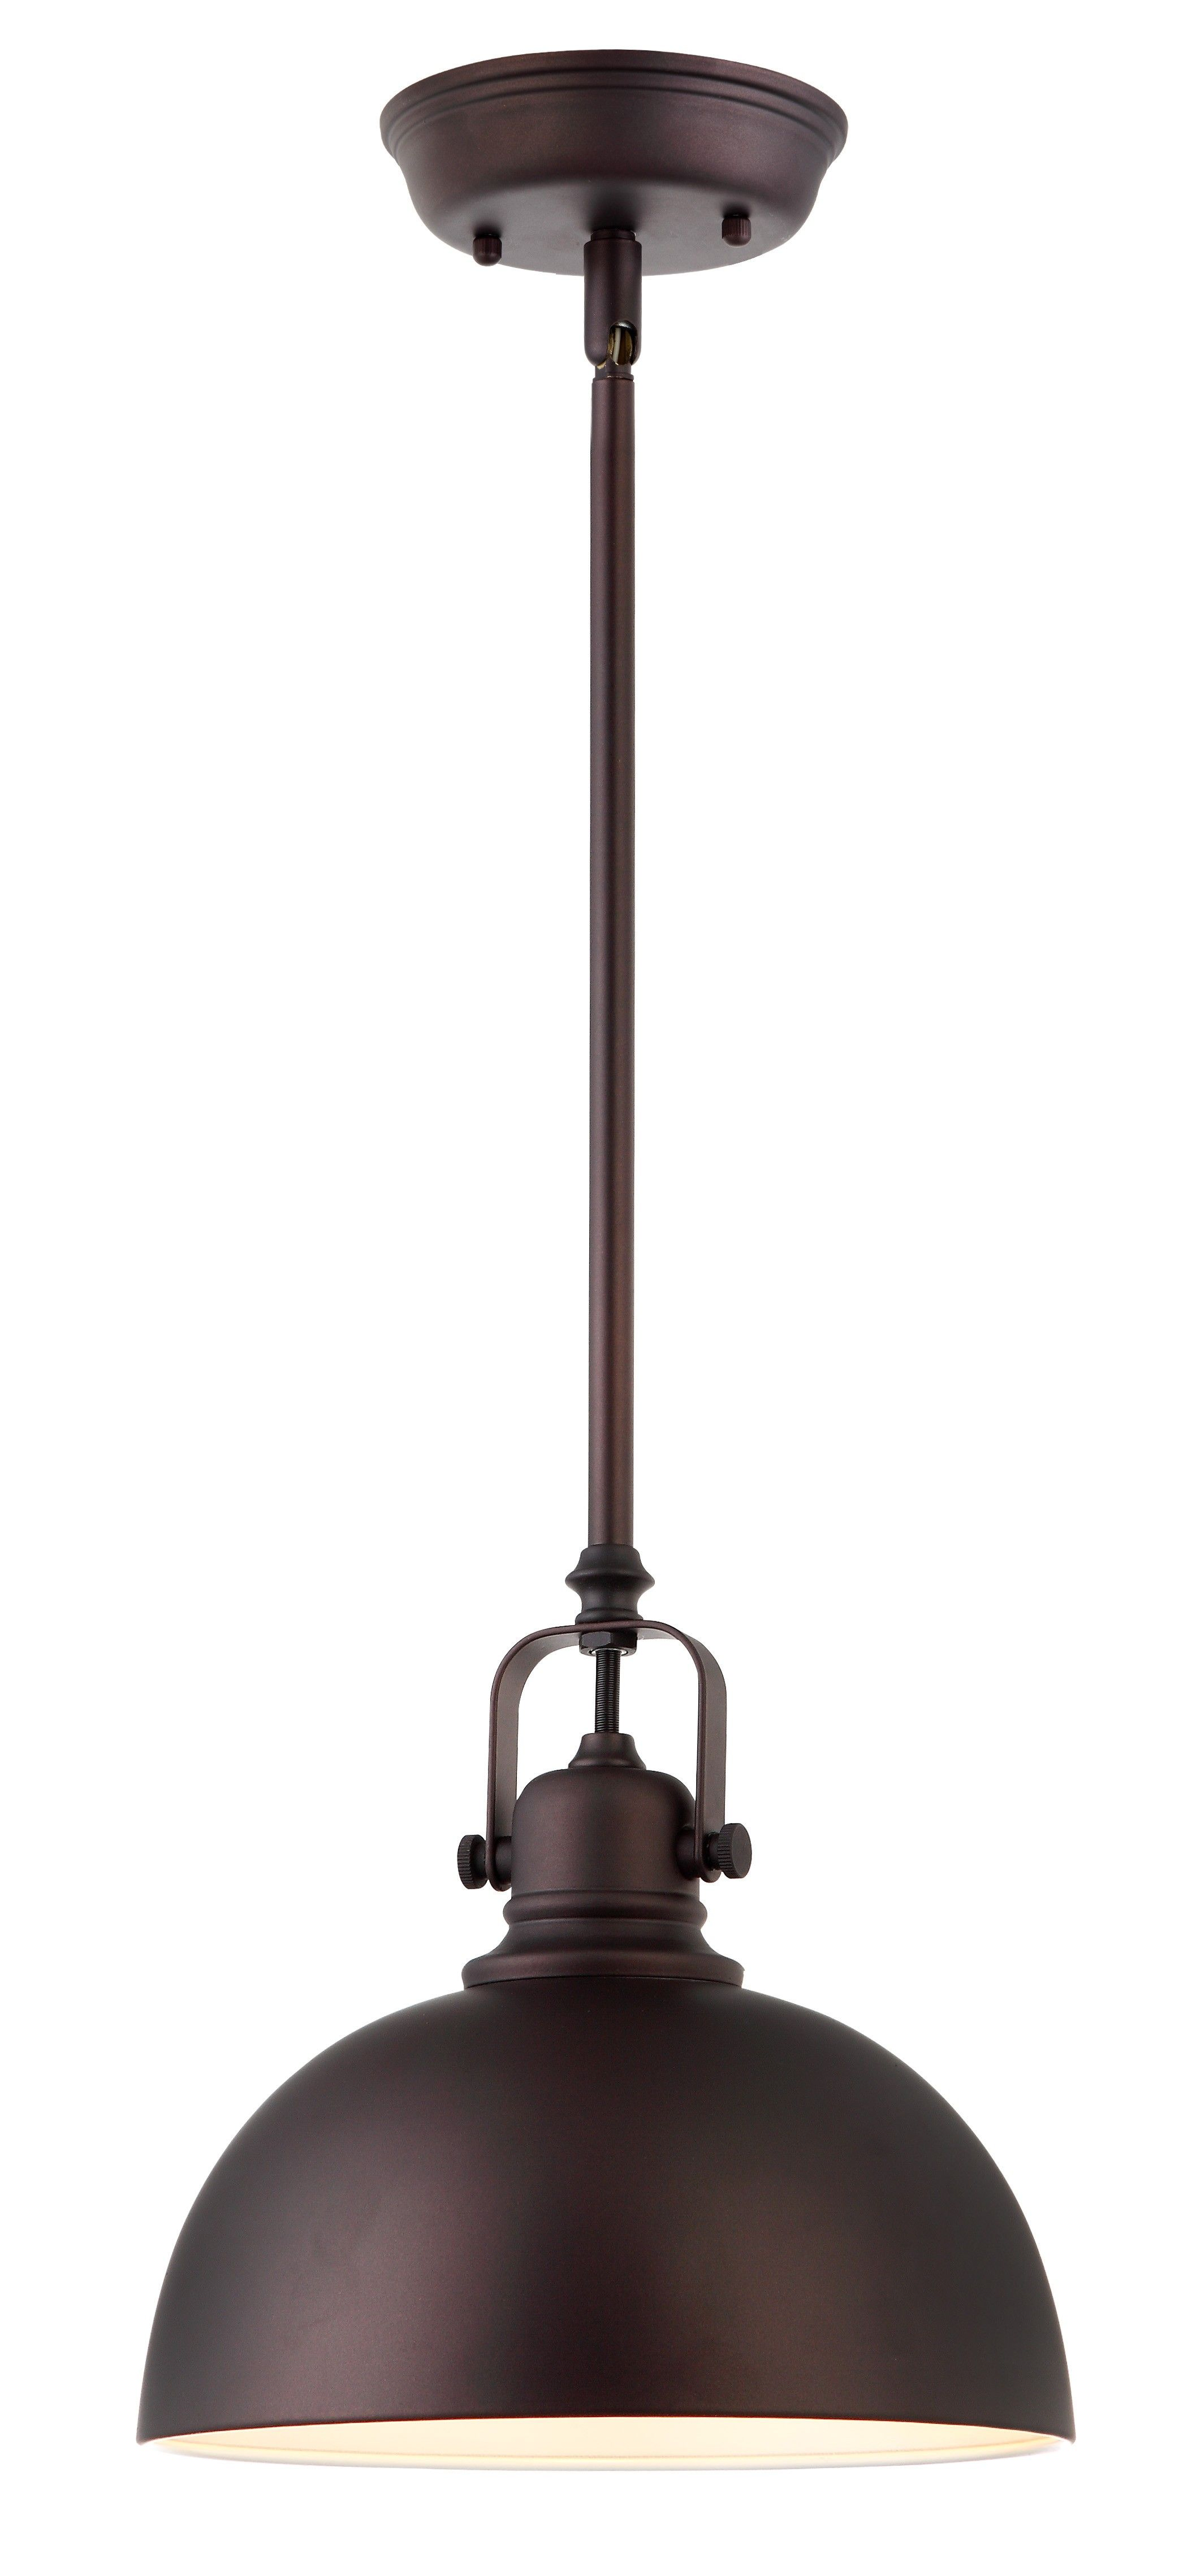 pin oiled style lights ulucan bronze pulley pendant type light